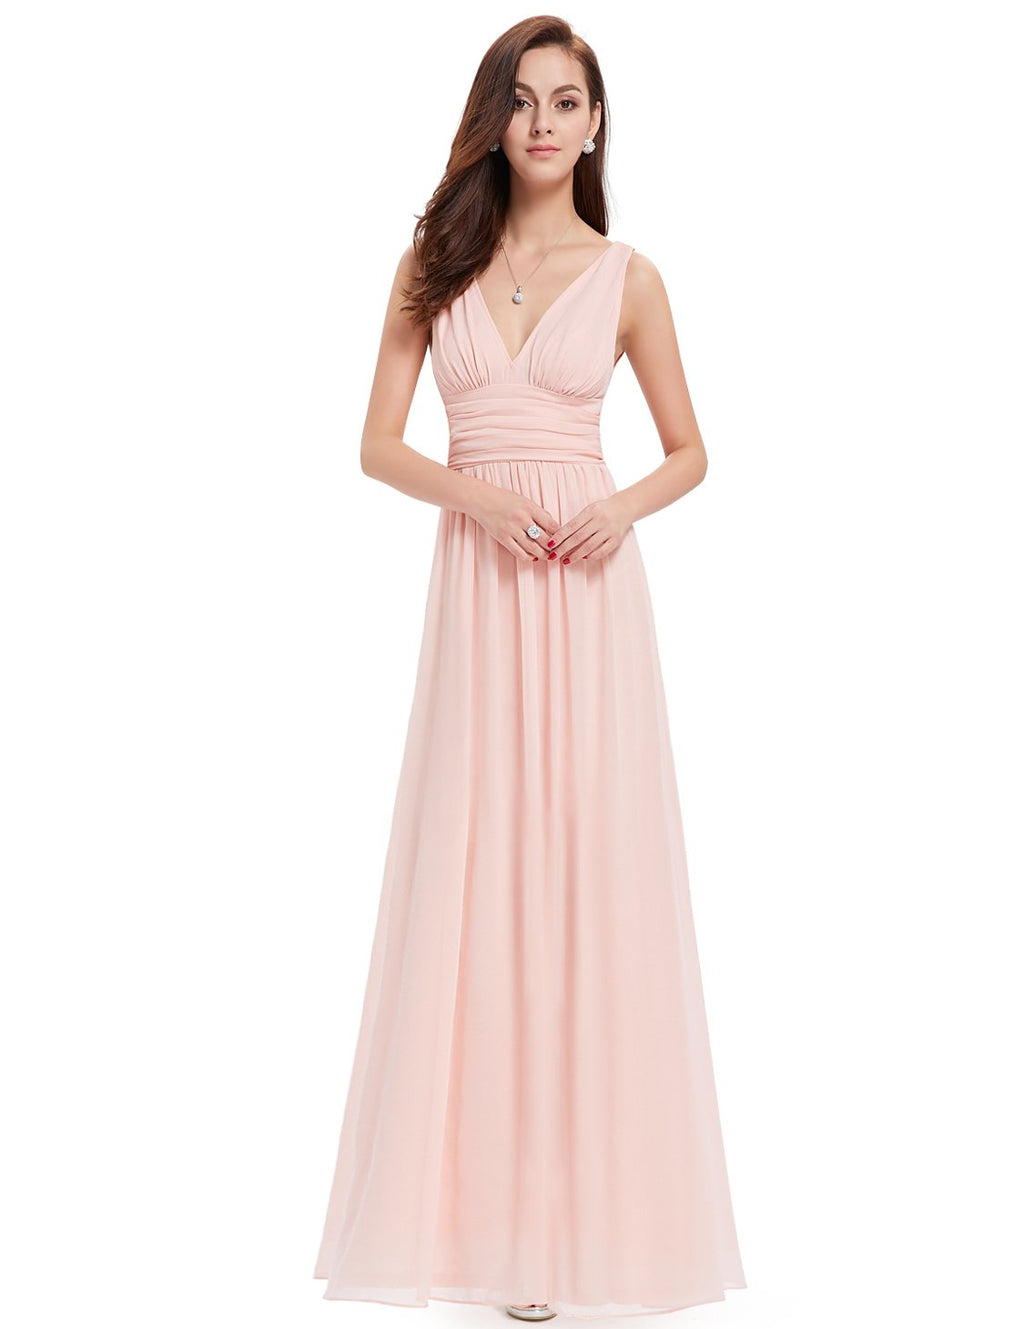 Chiffon Elegant Evening Gown Pink